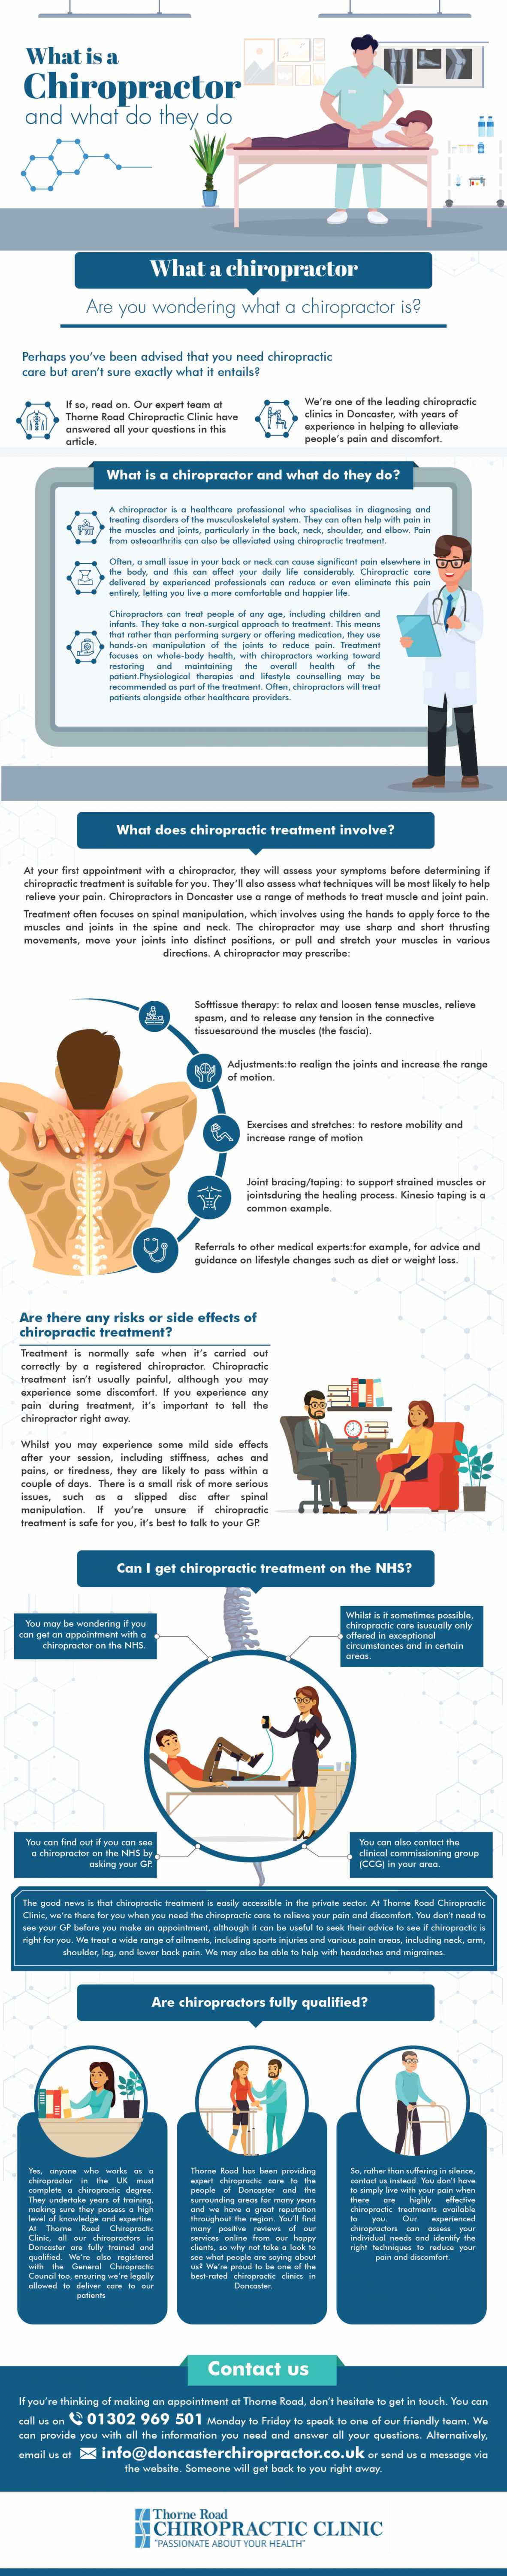 What is a chiropractor? [infographic]